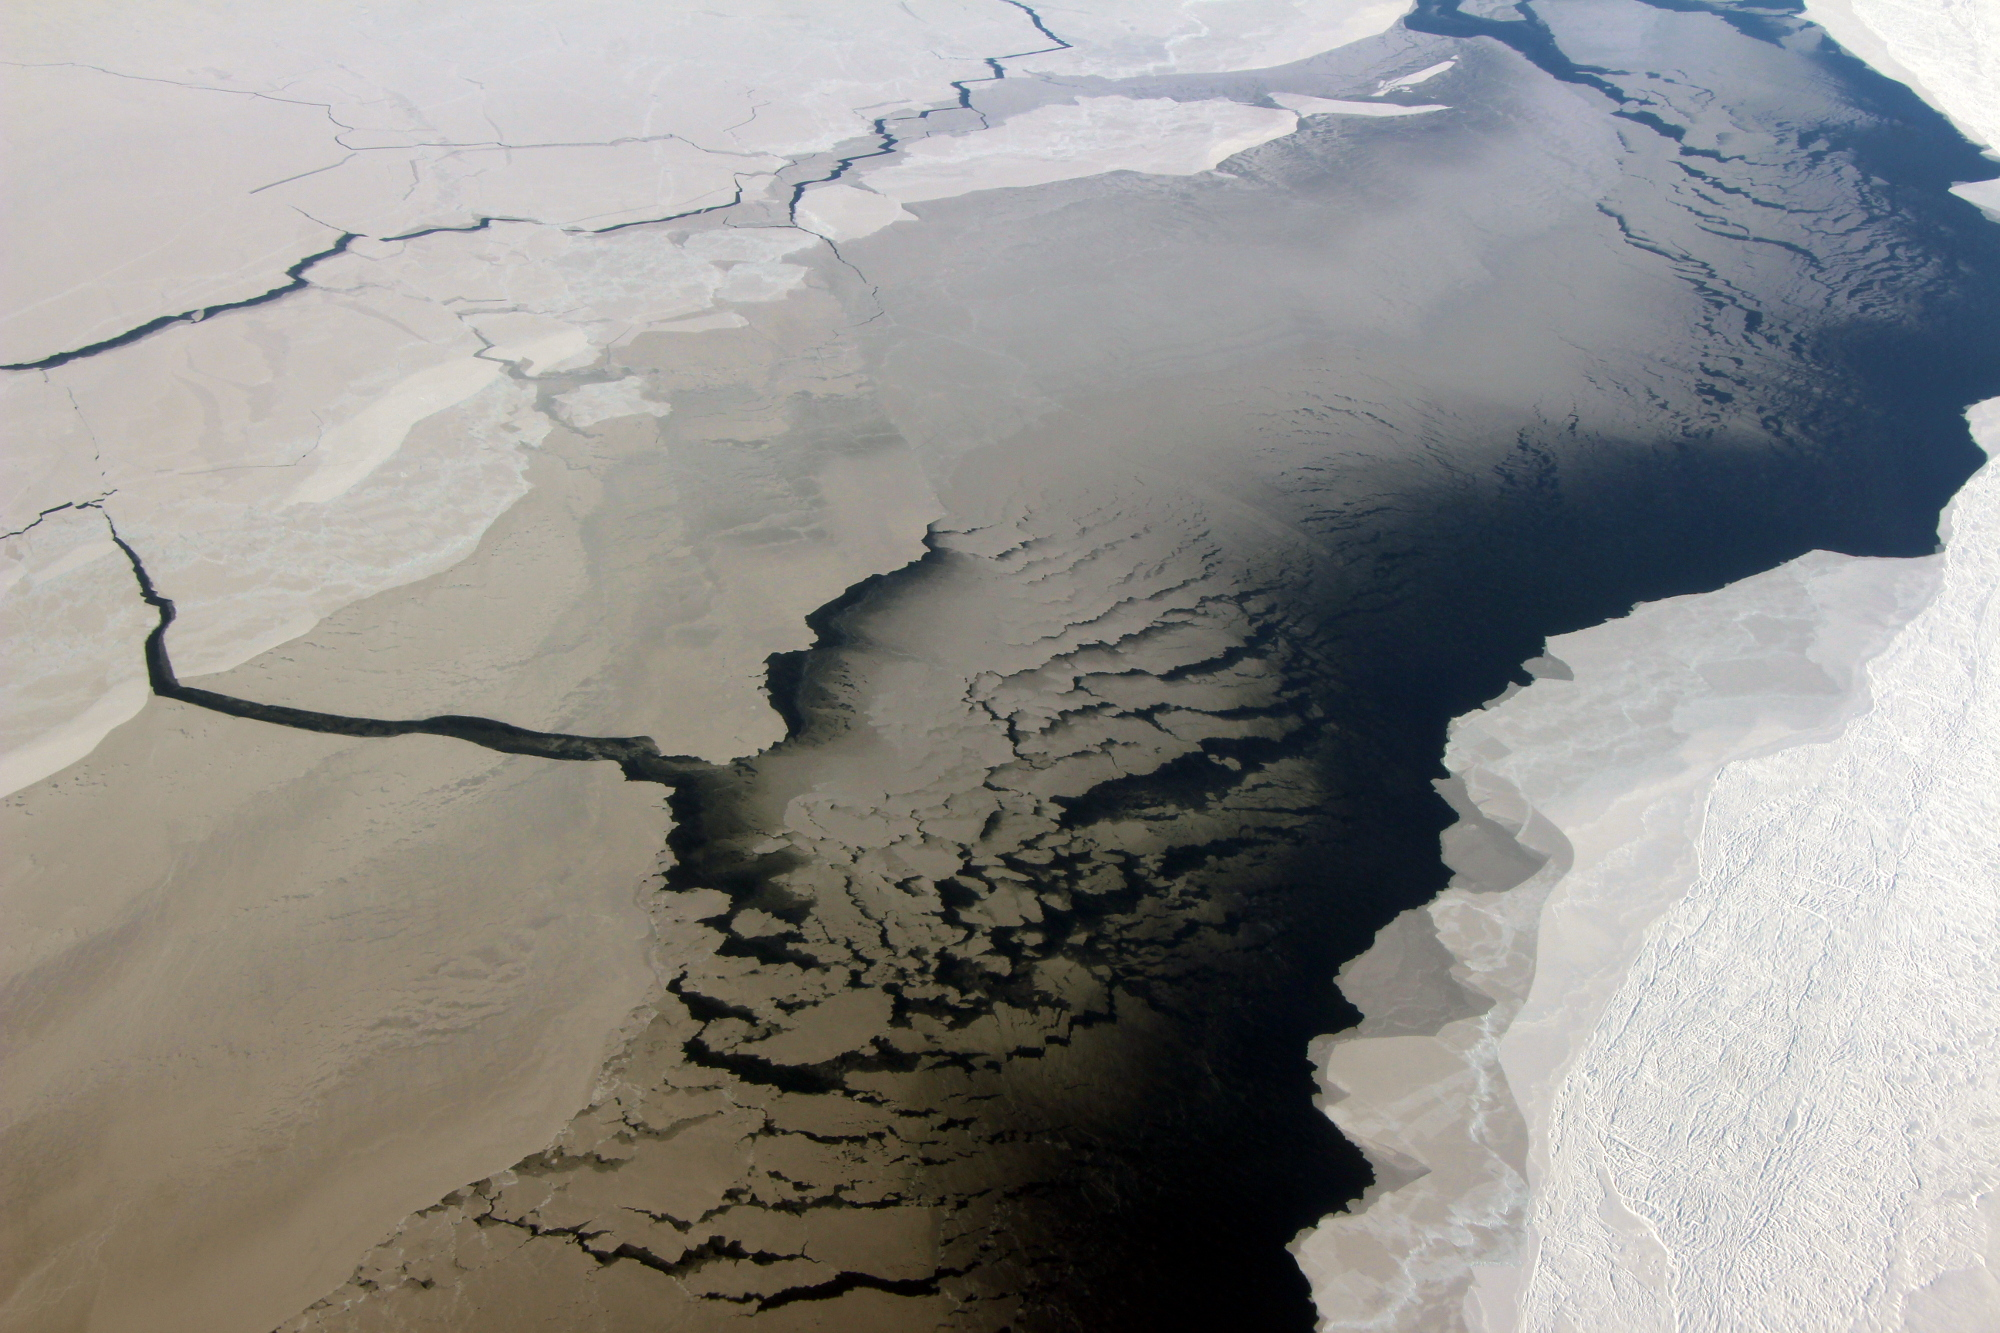 A coastal polynya, or opening in the sea ice cover, near the Filchner Ice Shelf in Antarctica, as seen during an Operation IceBridge flight on Oct. 10, 2018.